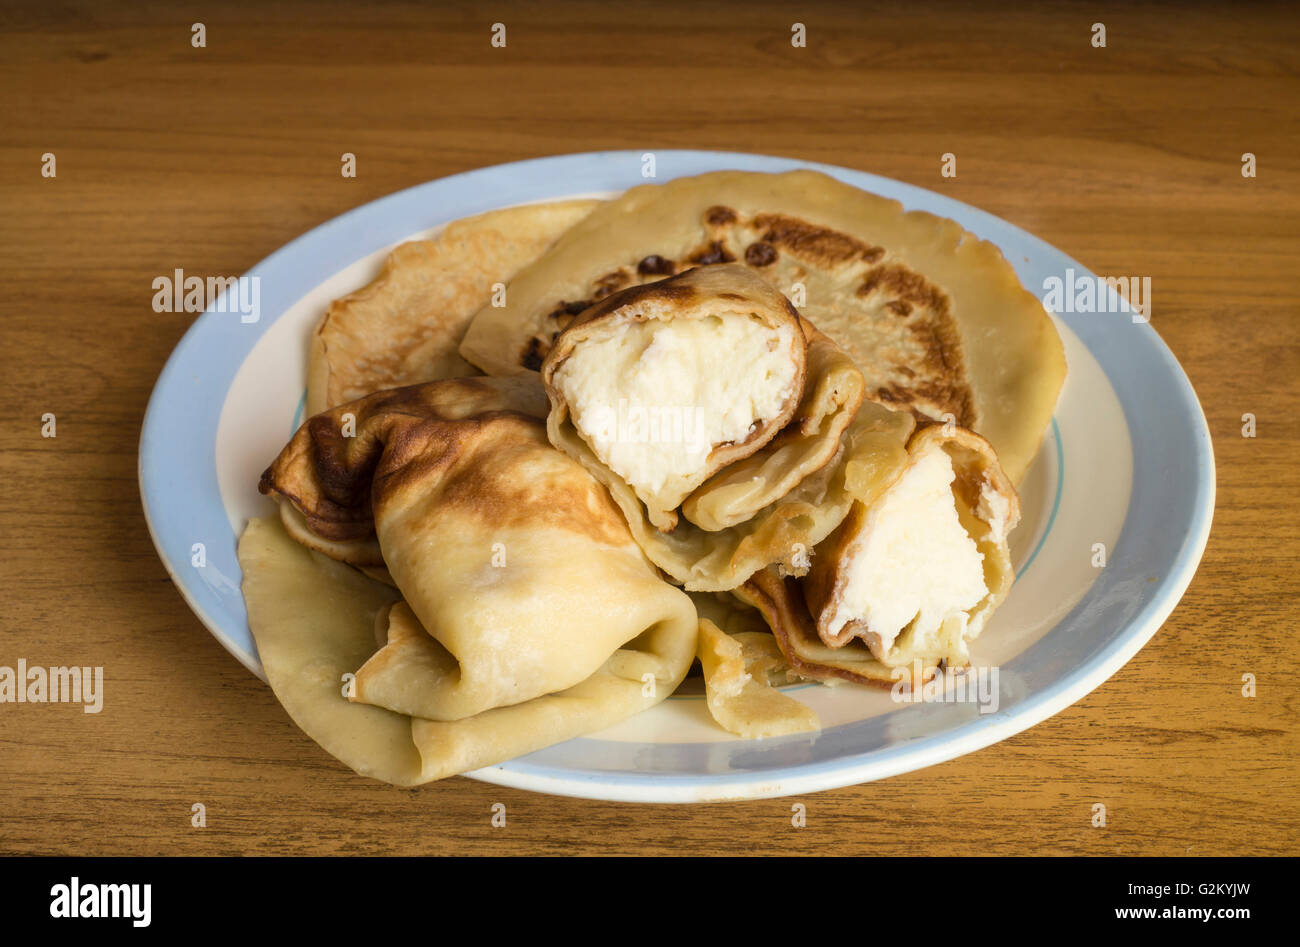 Home pancakes with white pot cheese for morning meal on blue plate - Stock Image